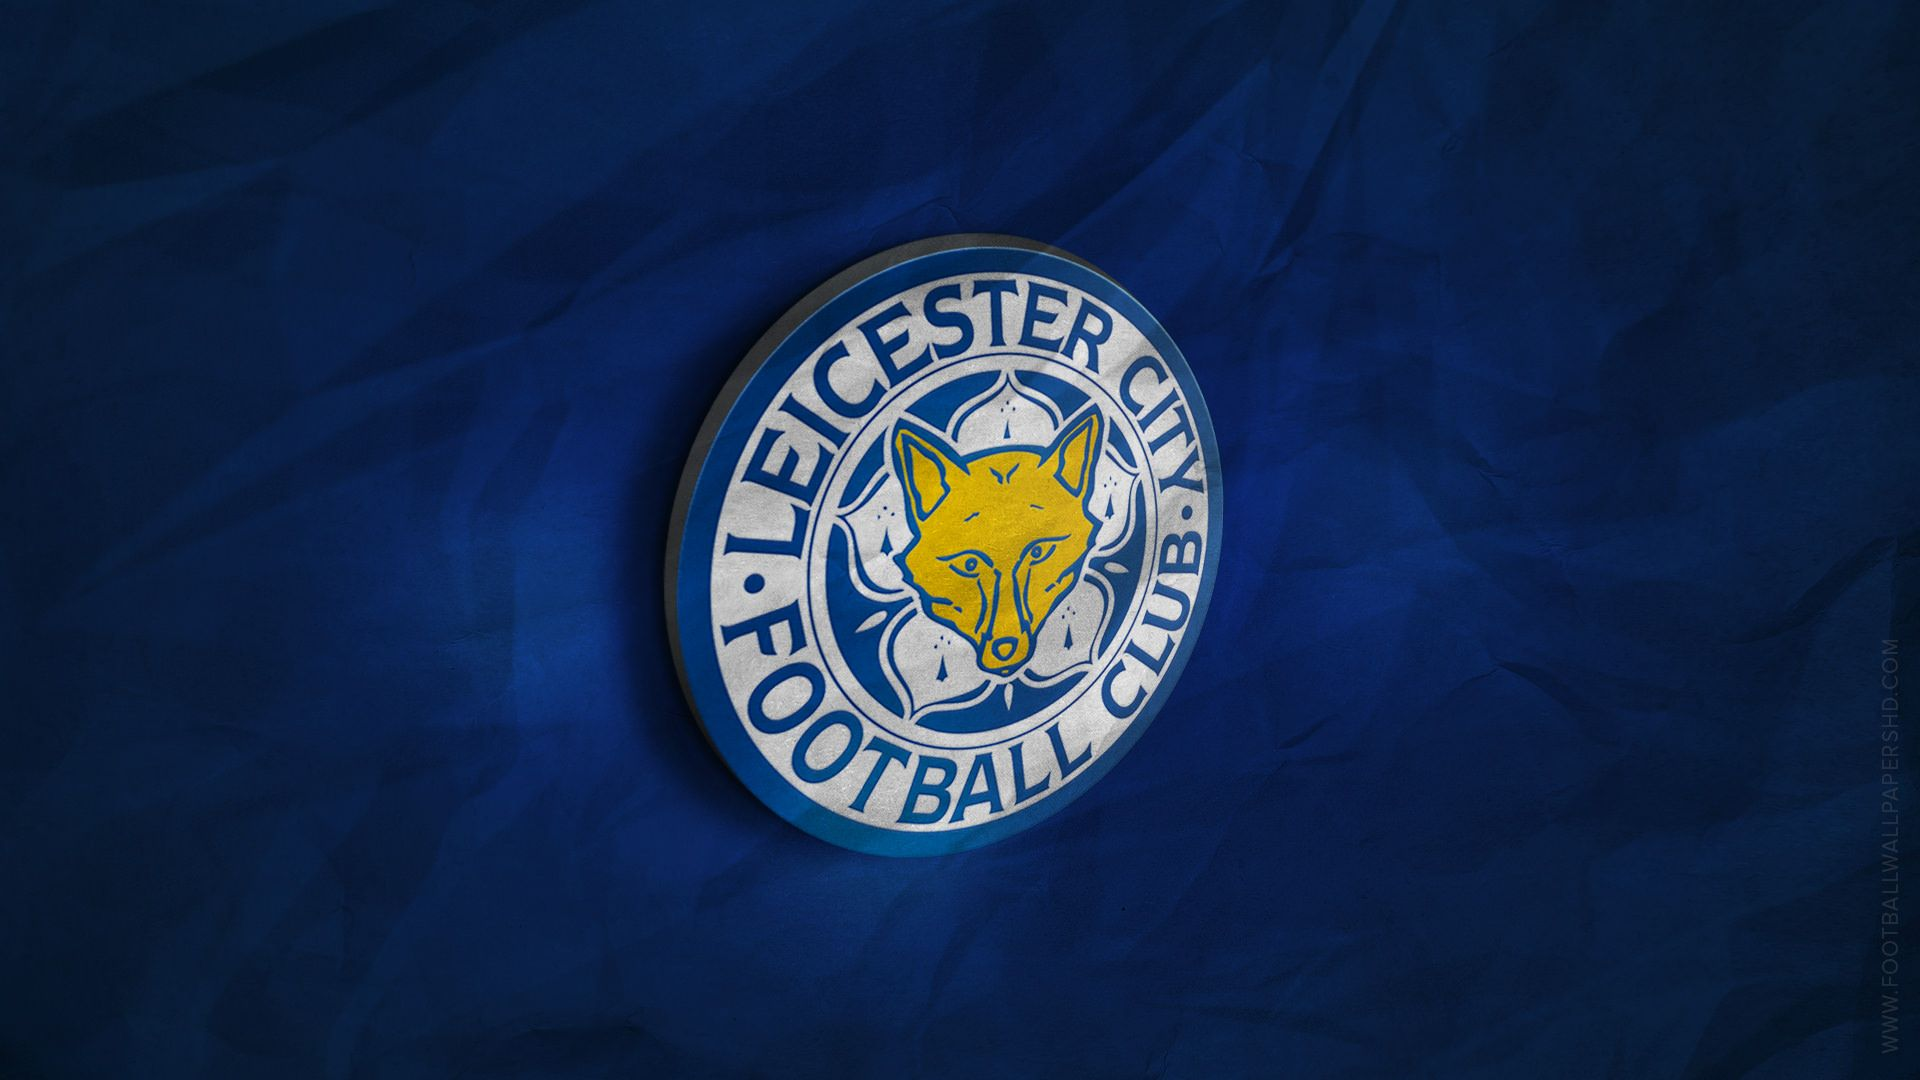 Leicester City 3D Logo Wallpaper Football Wallpapers HD 1920x1080